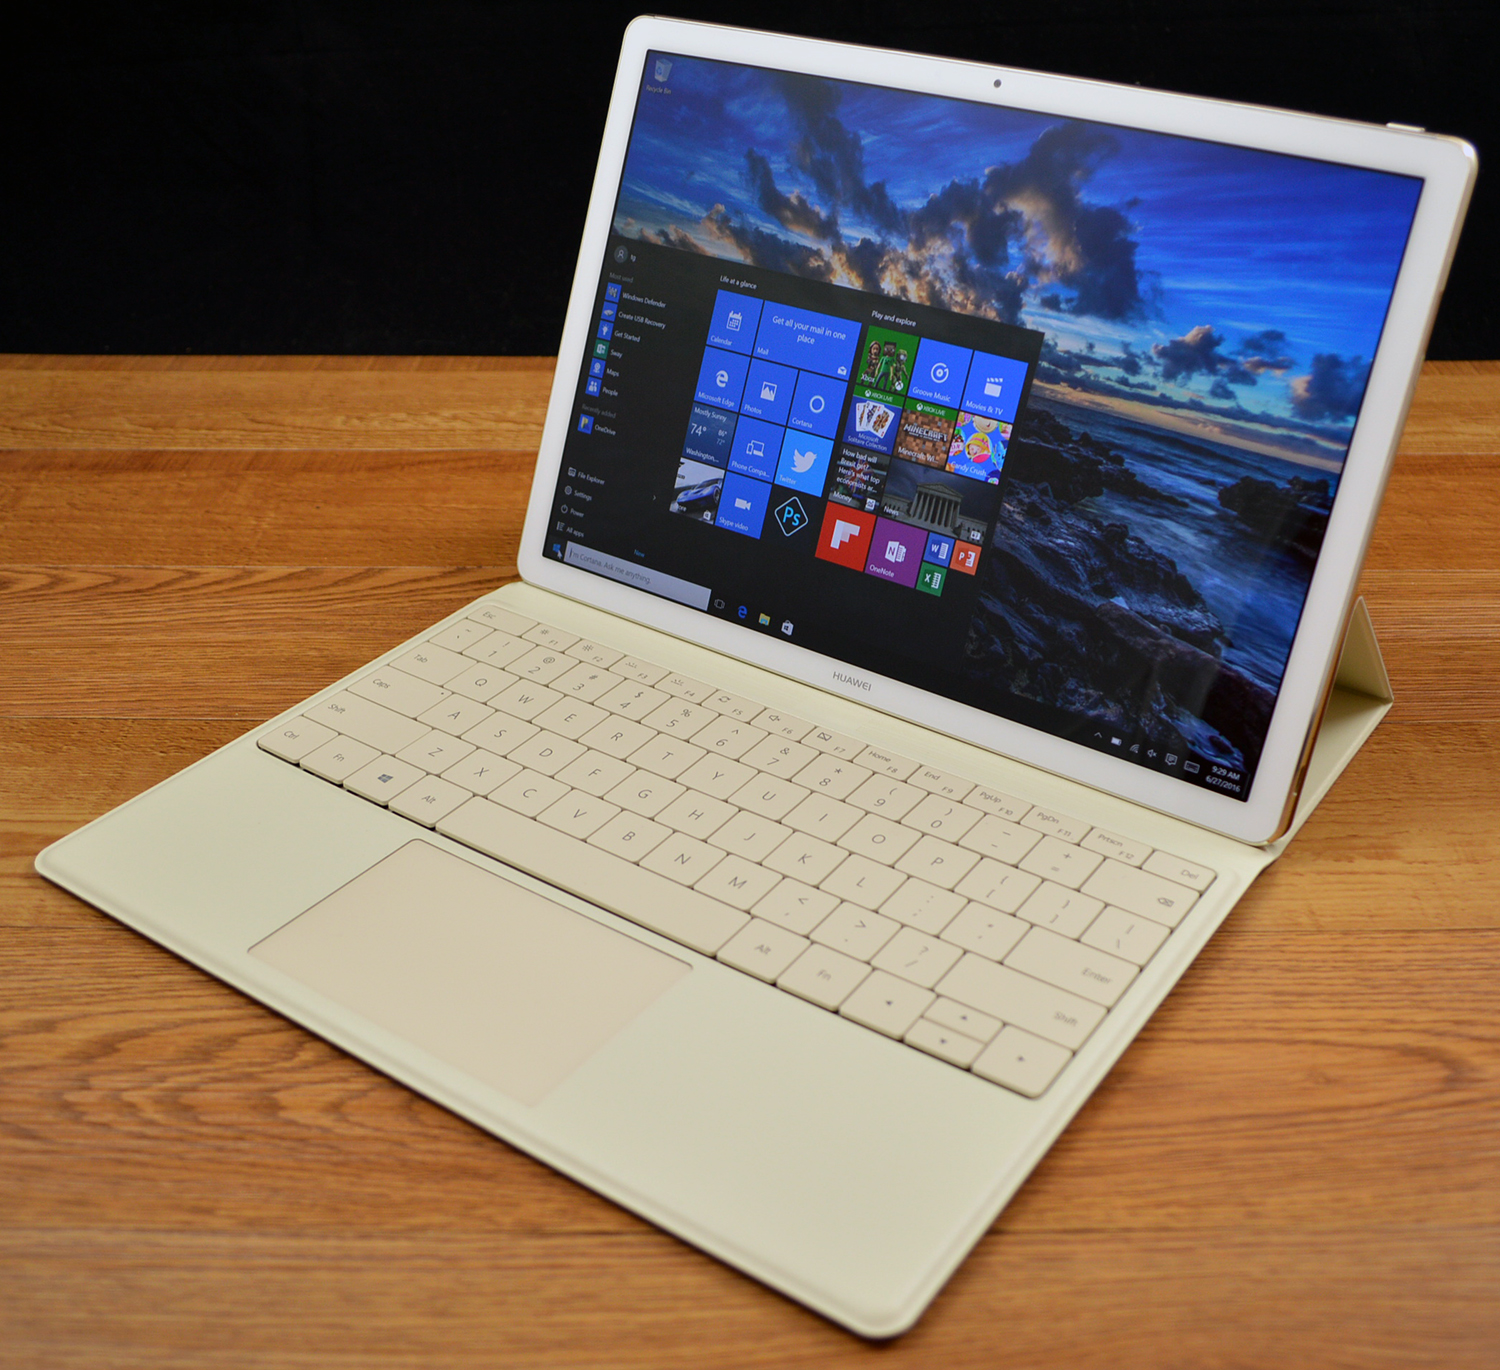 Th Huawei MateBook is a thin Windows 10 two-in-one.